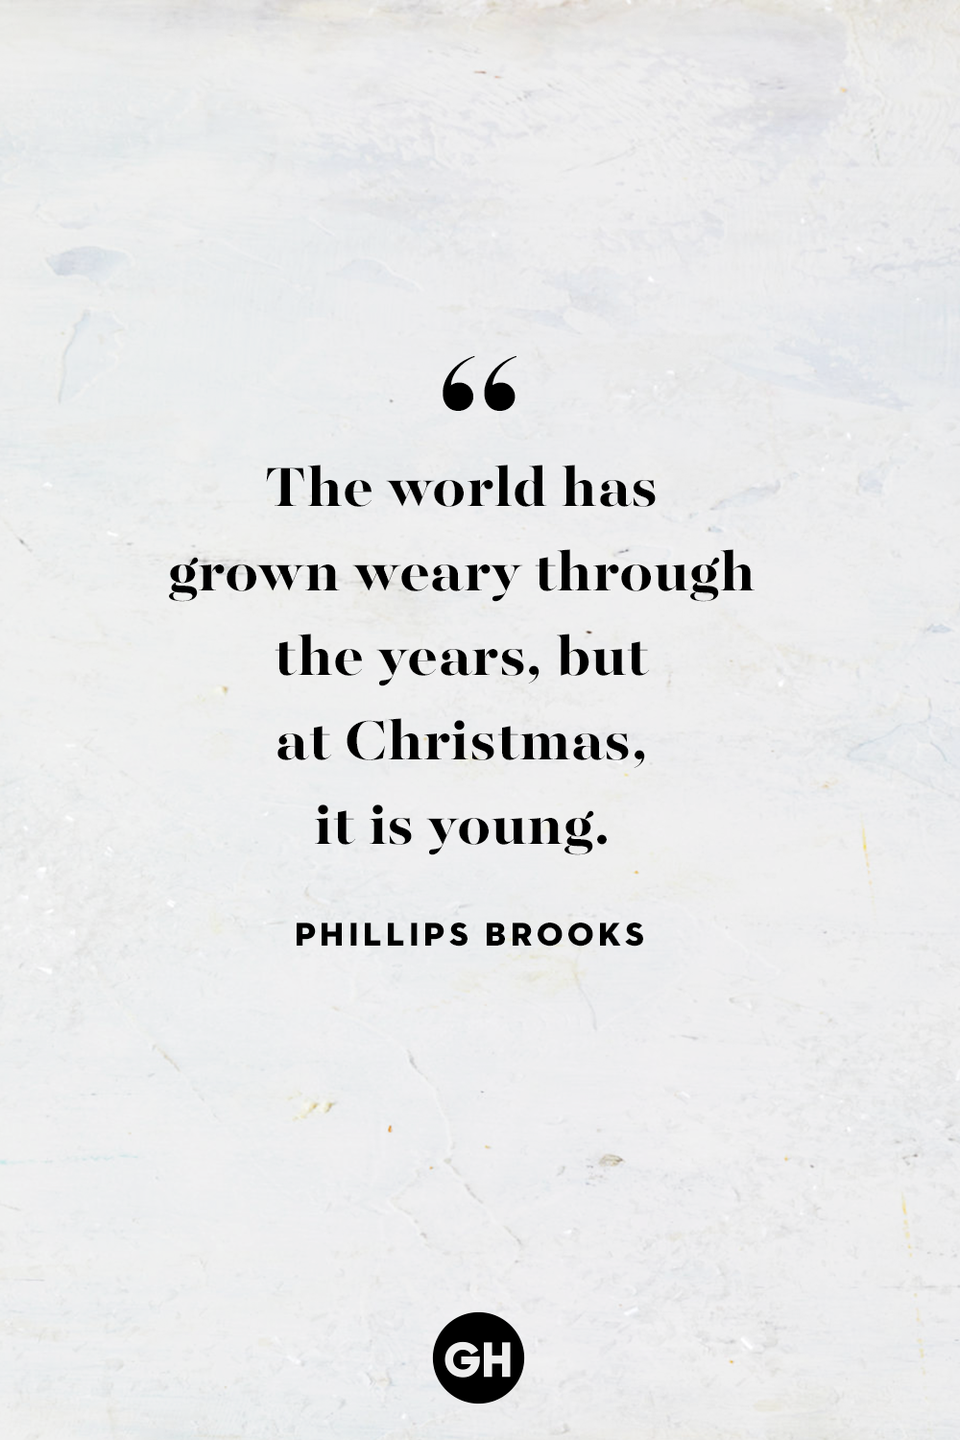 <p>The world has grown weary through the years, but at Christmas it is young. </p>